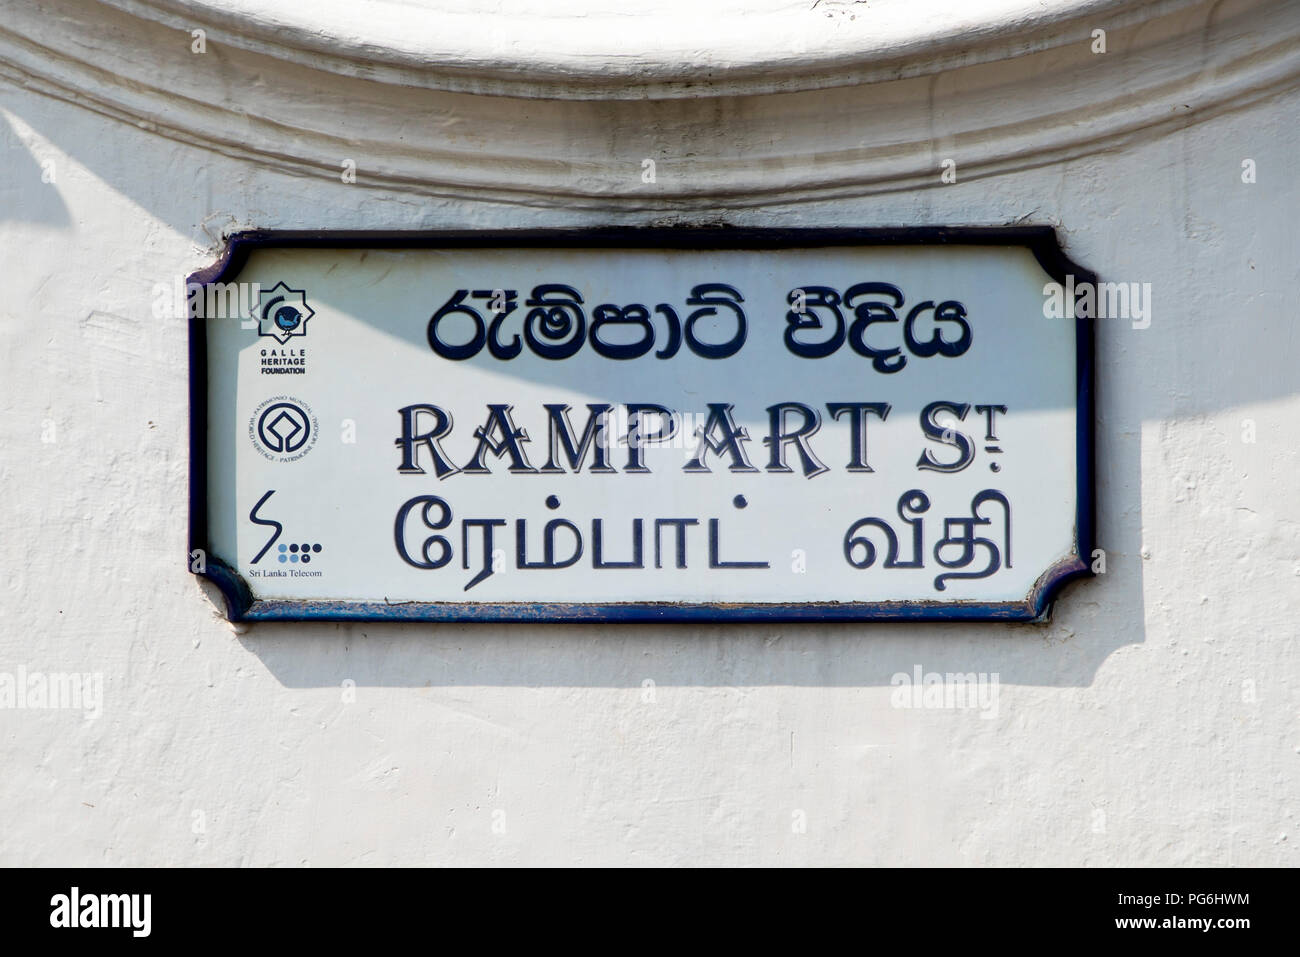 Horizontal close up of an old streetsign in Galle, Sri Lanka. - Stock Image